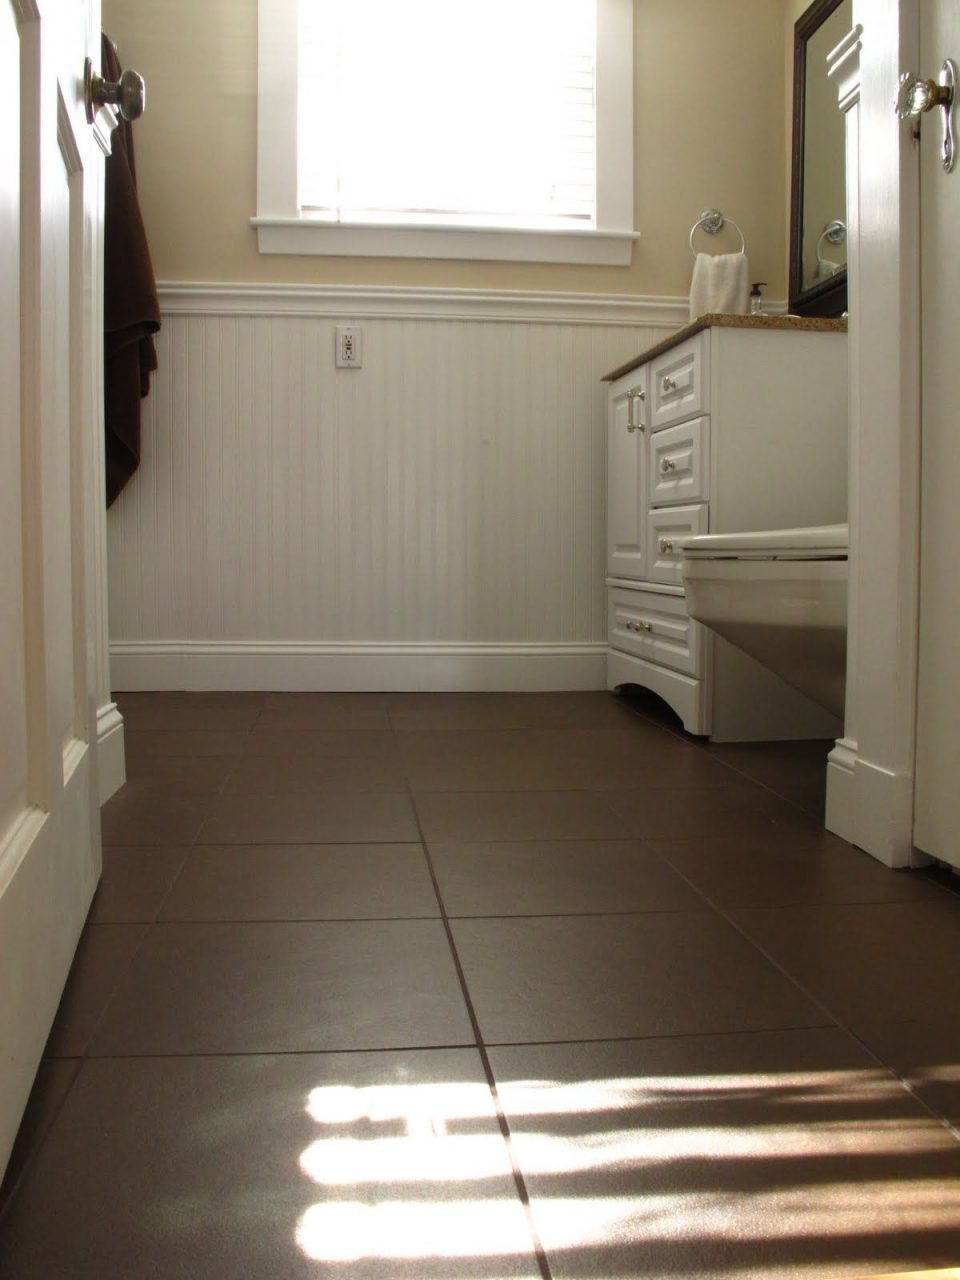 Dark Brown Tile In Bathroom Floor White Subway Tile In Spanish Tile